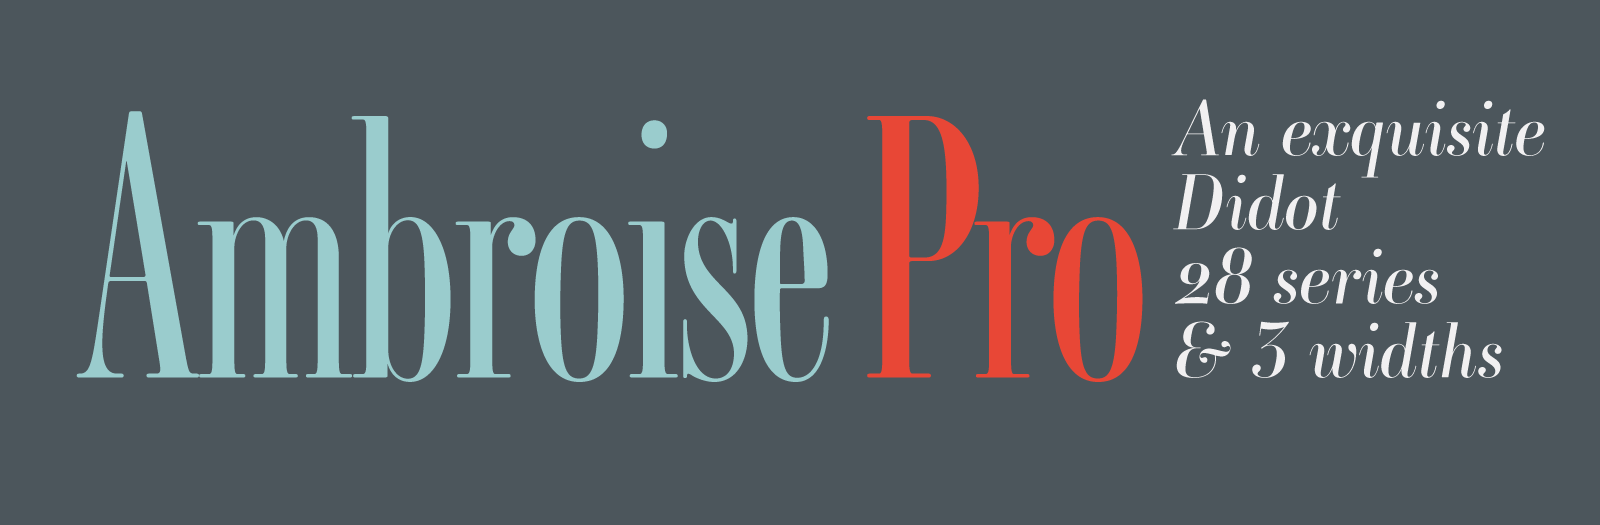 Ambroise Pro by Jean Francois Porchez, brought back to life: Fifteen years in the making!